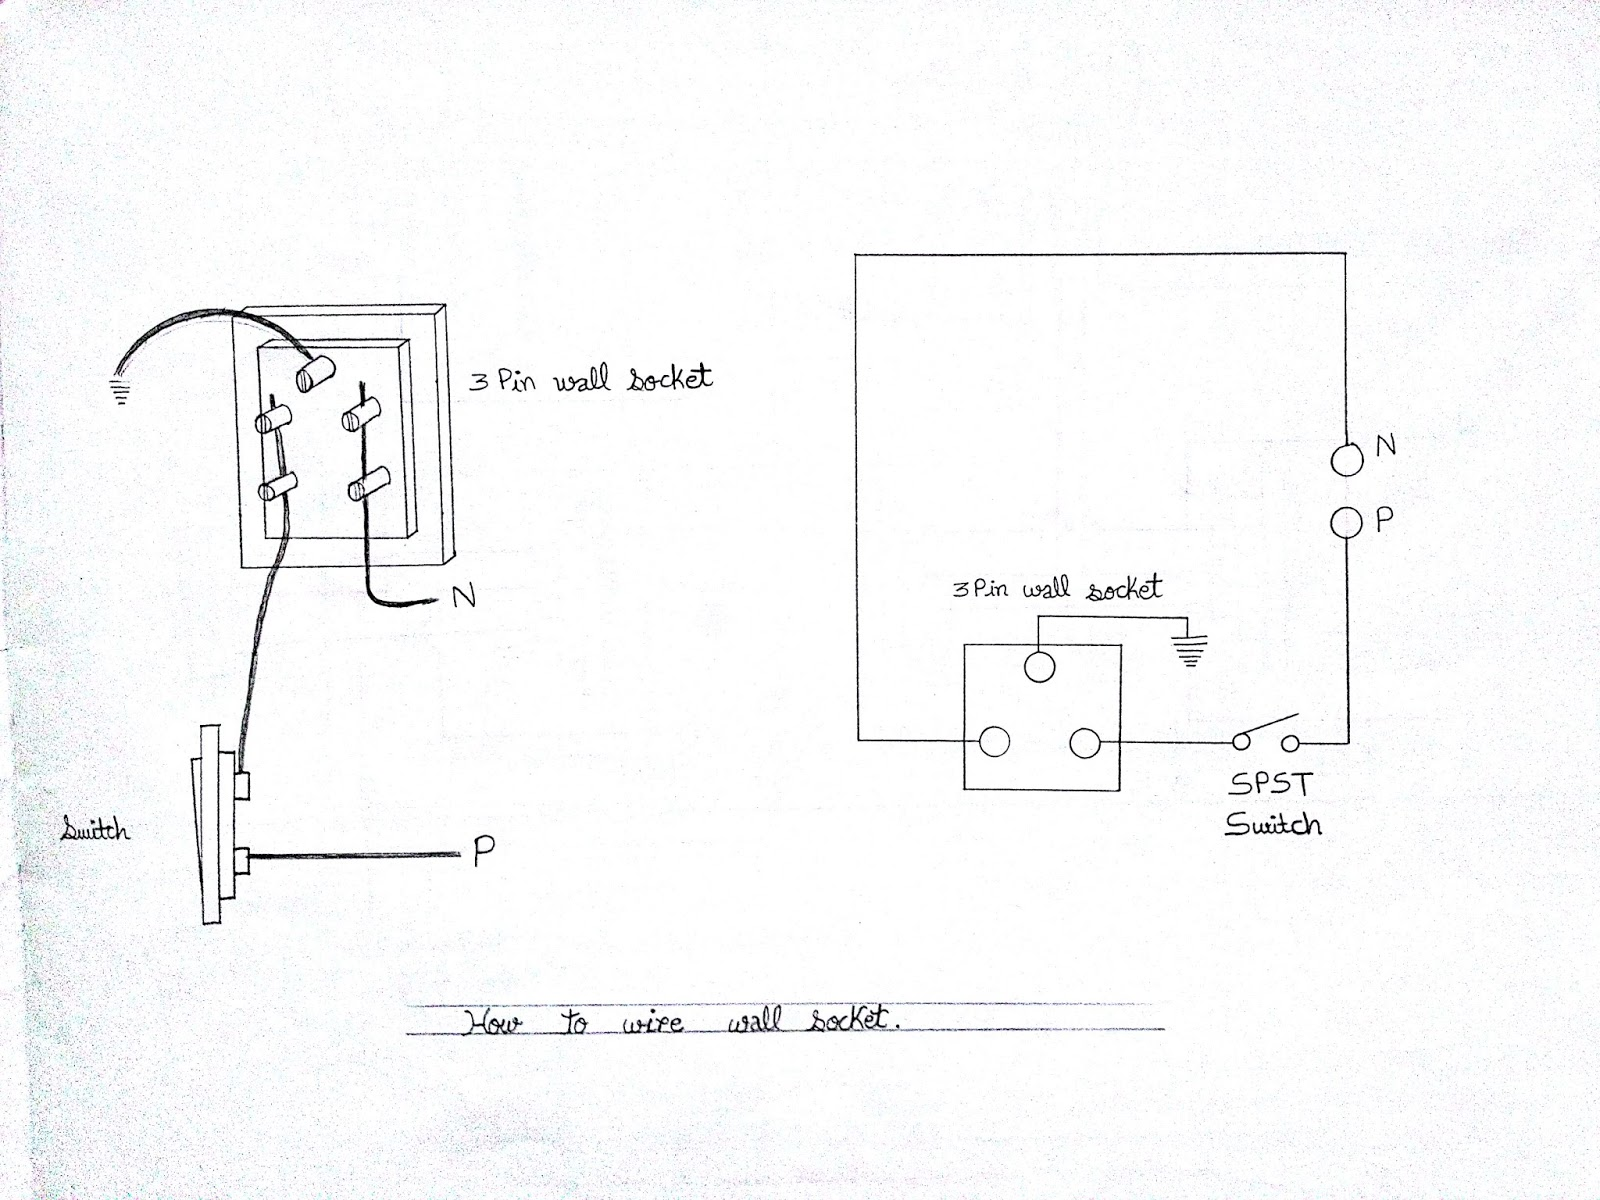 medium resolution of learn electrician electrical wiring diagrams of switches sockets 2 way switches wiring diagram of 1